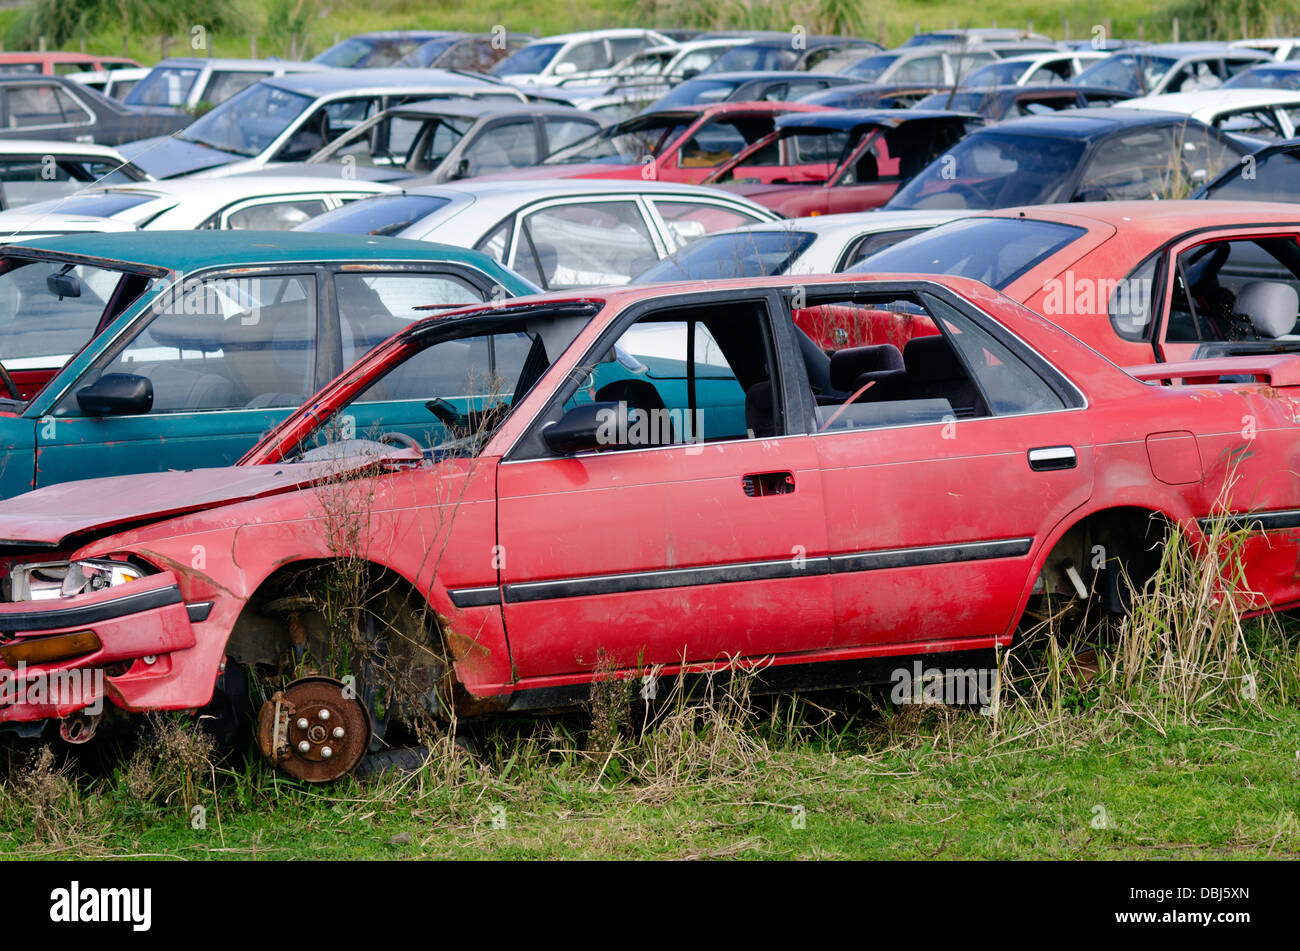 New Zealand Scrap Yard Stock Photos & New Zealand Scrap Yard Stock ...